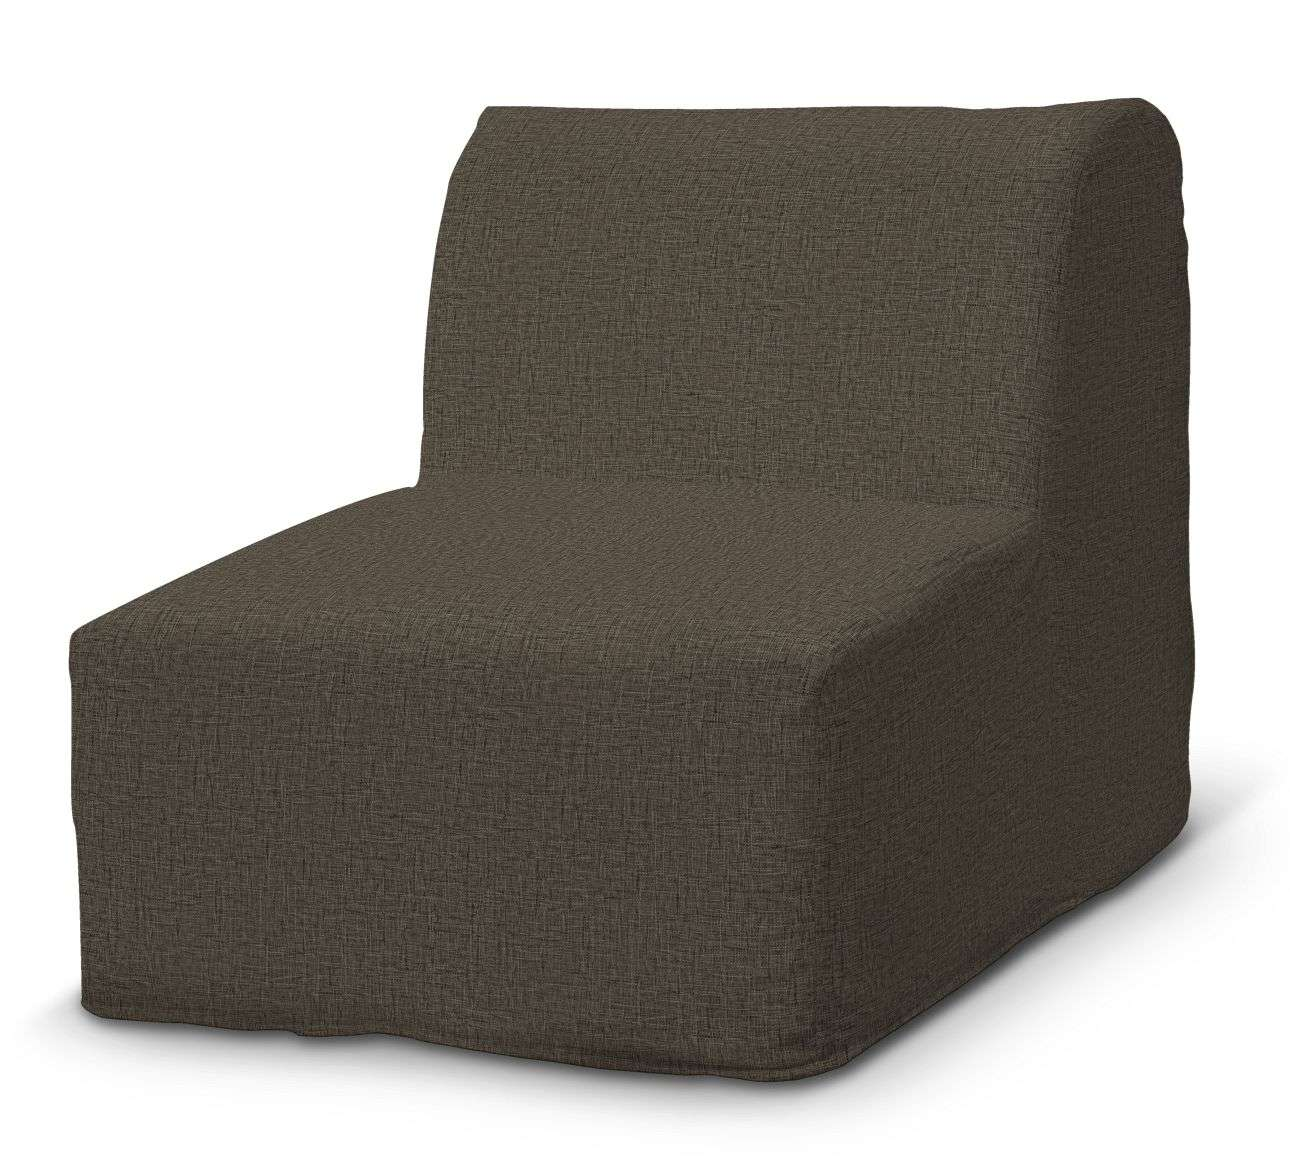 Lycksele chair cover in collection Living, fabric: 106-92